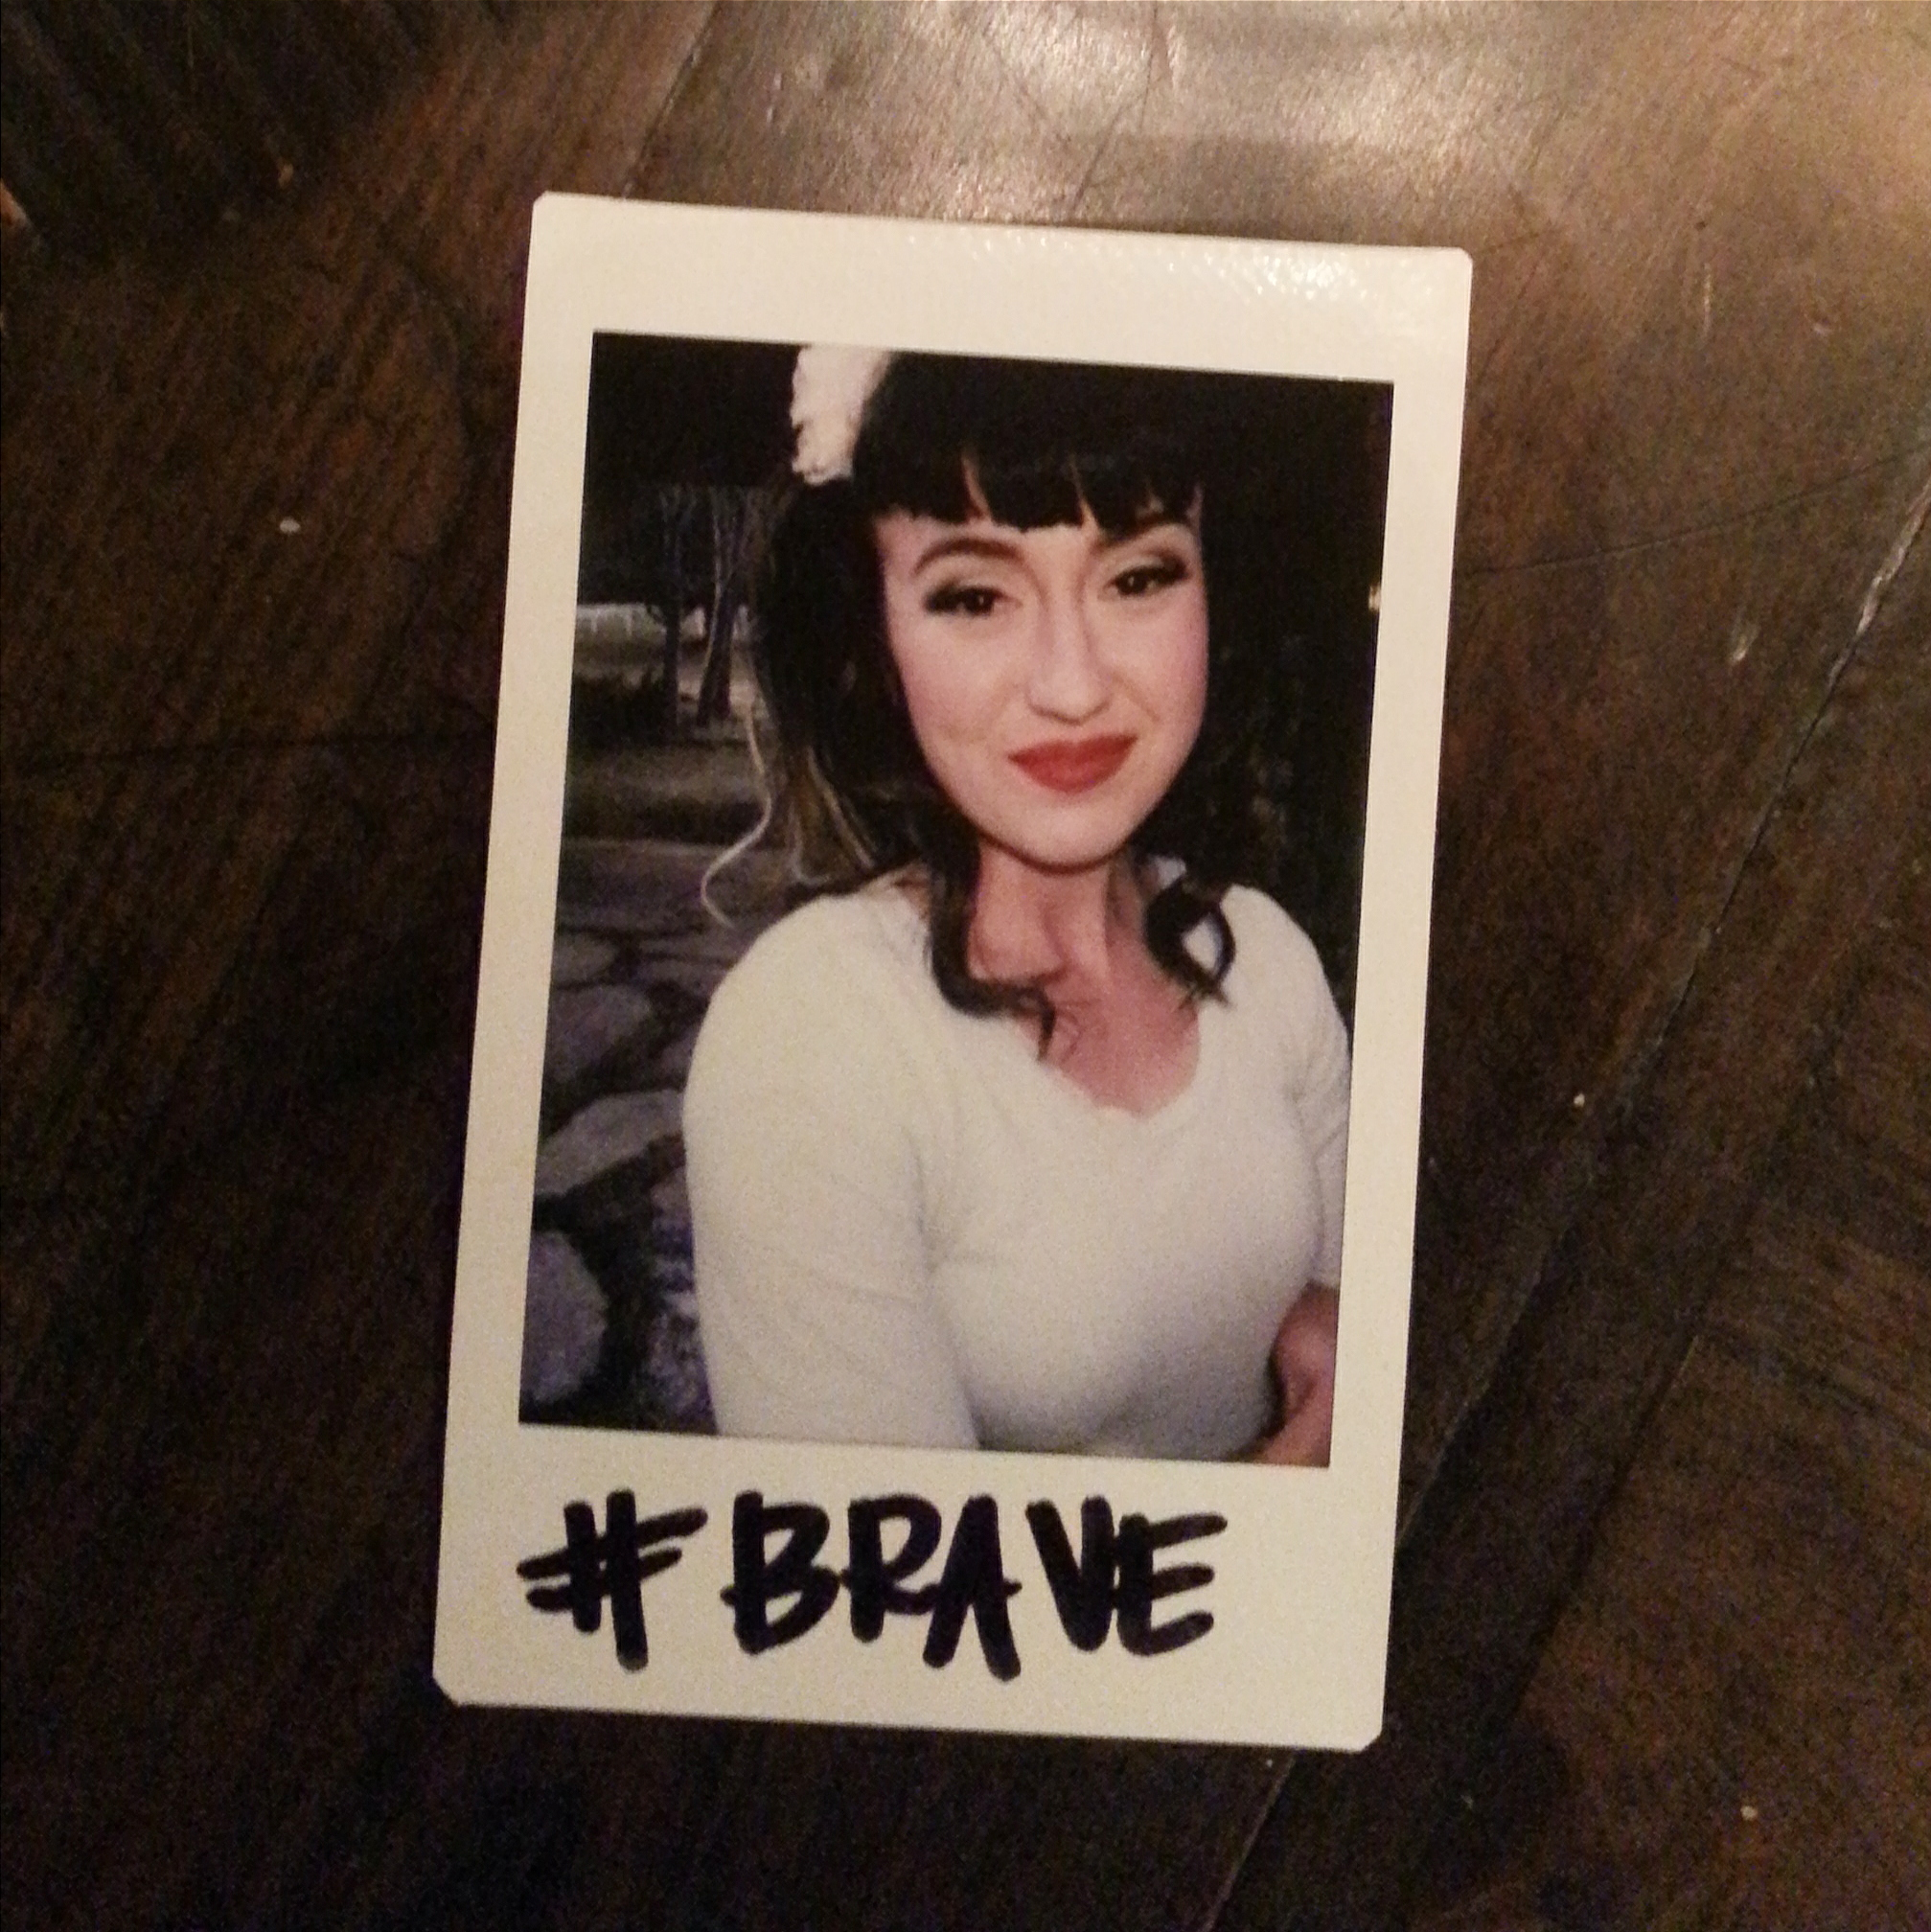 After someone else pampered me with doing my makeup and hair, I got some photos taken too. I noticed all the other takeaway Polaroids, and they all said #Brave. As I watched her write out mine, I noticed it said #BRAVE. I told her how much I loved that she put mine in caps. She then mentioned how the other way just didn't feel right...I still struggle with seeing the same thing in me everyone else does. I like to believe that is normal. I pray I can be the BRAVE person others believe I am.